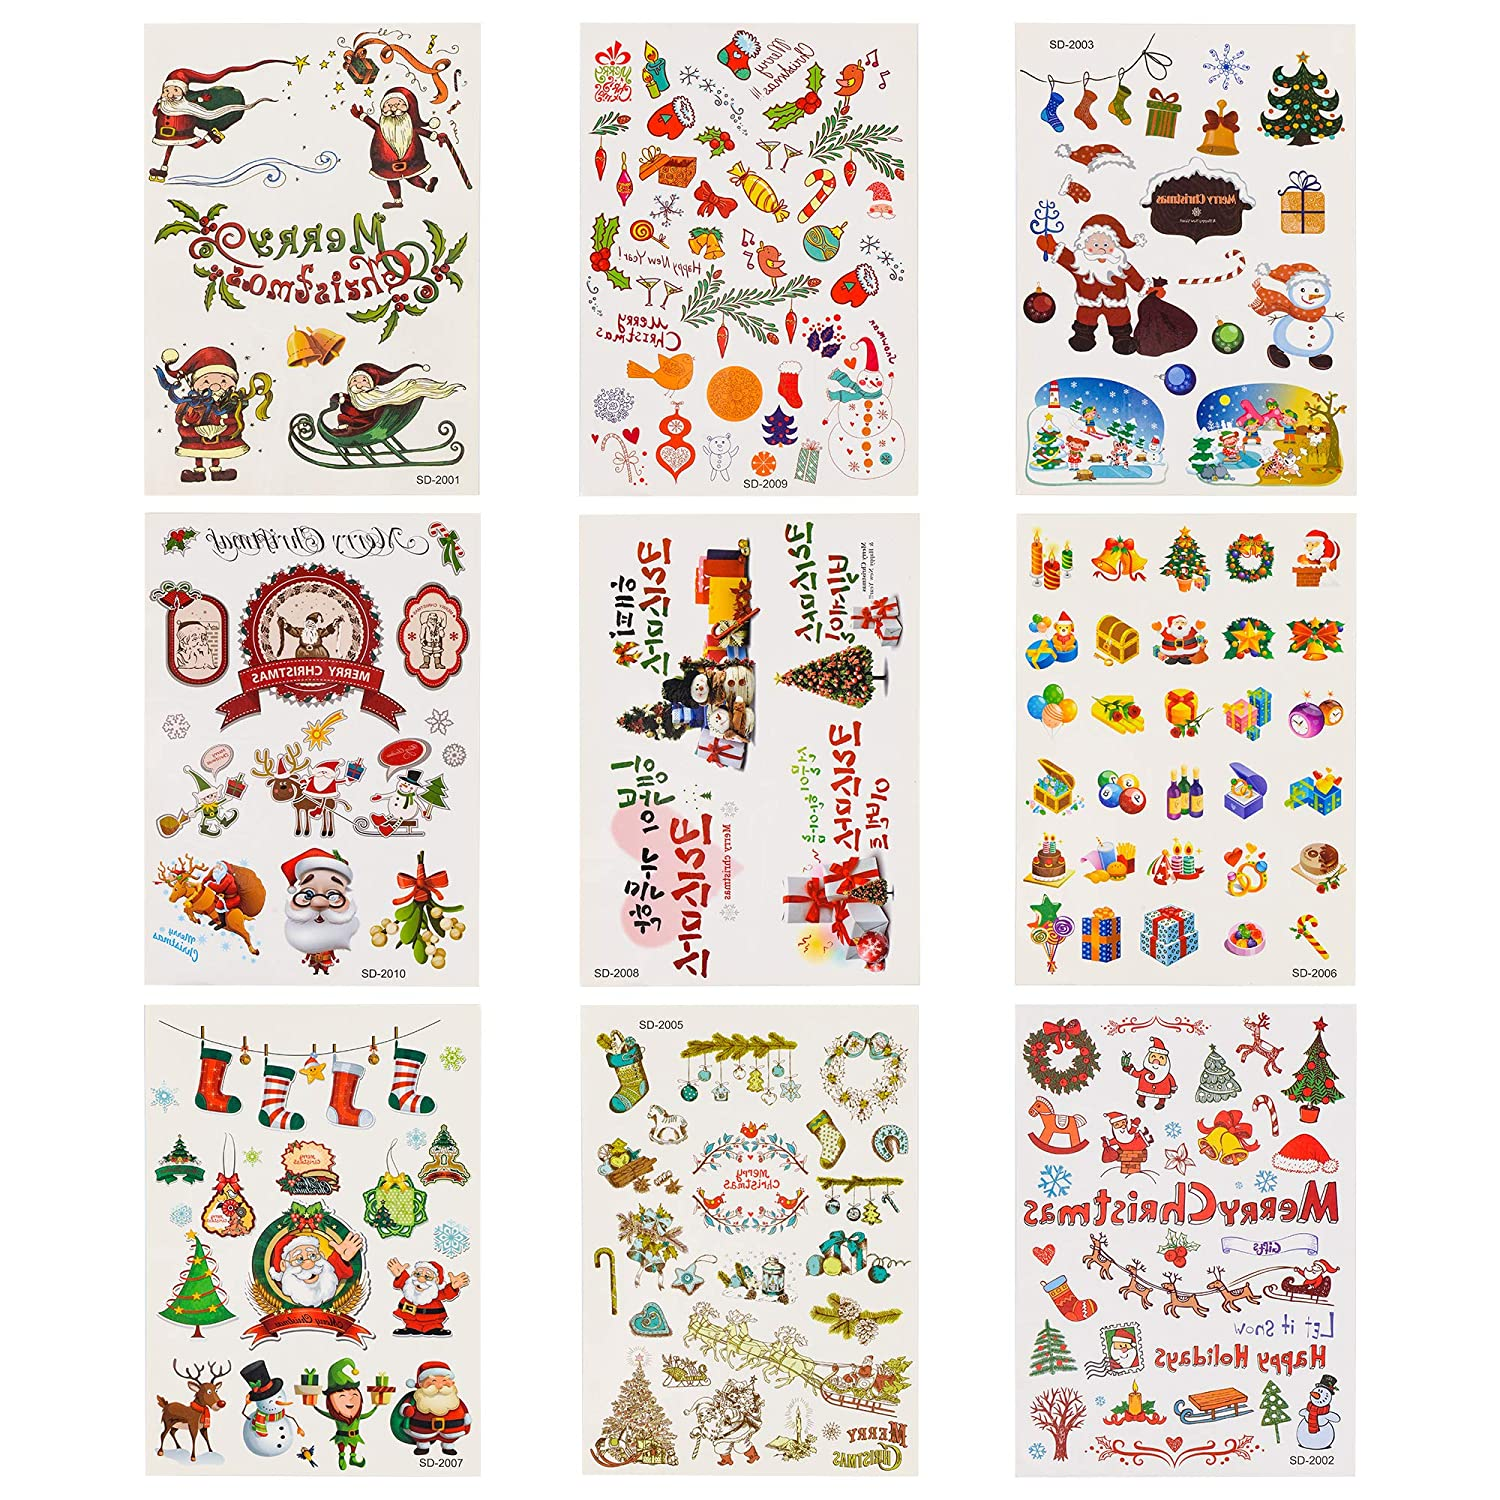 Waldd 9 Sheets Large Size Christmas Temporary Tattoos Christmas Party Decorations Tattoos 120 Styles Merry Christmas Party Favors, Christmas Eve, Xmas Tree, Santa, More